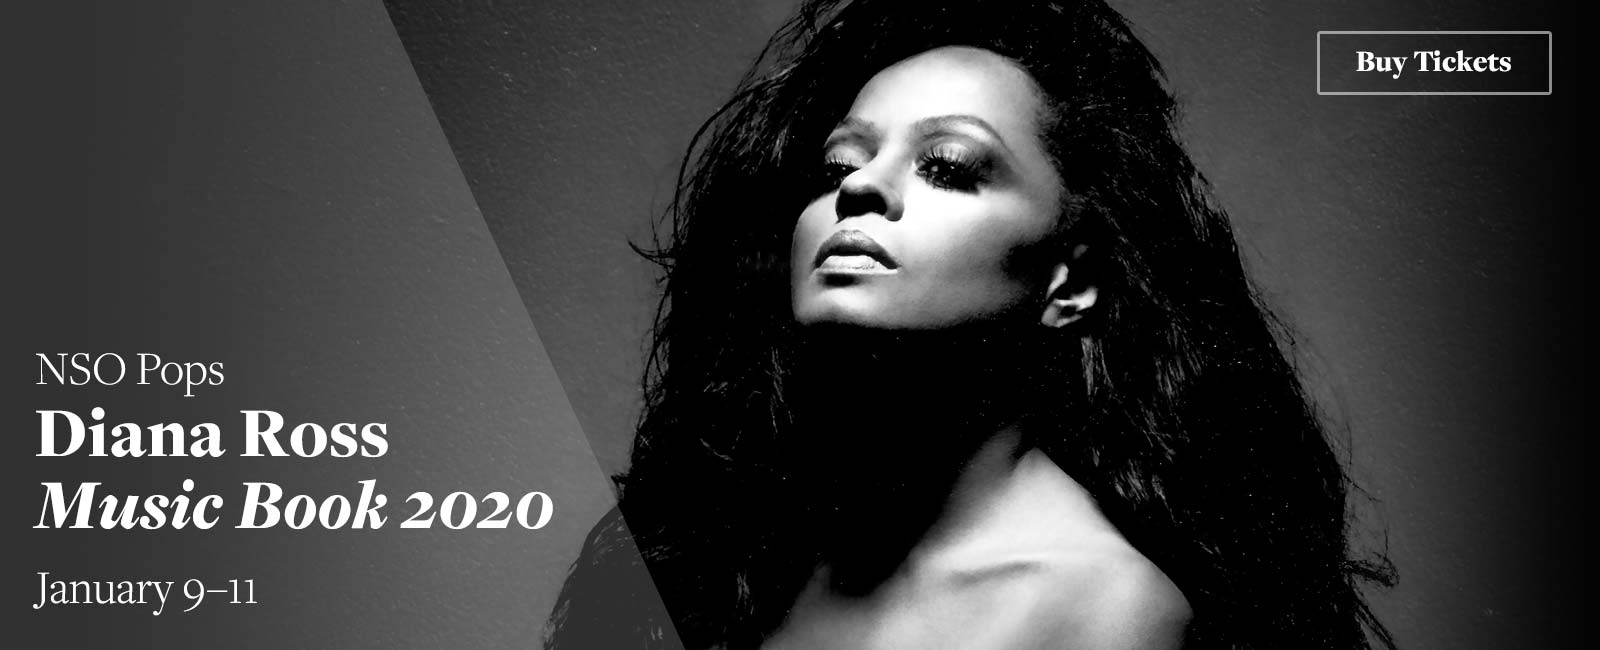 NSO Pops: Diana Ross